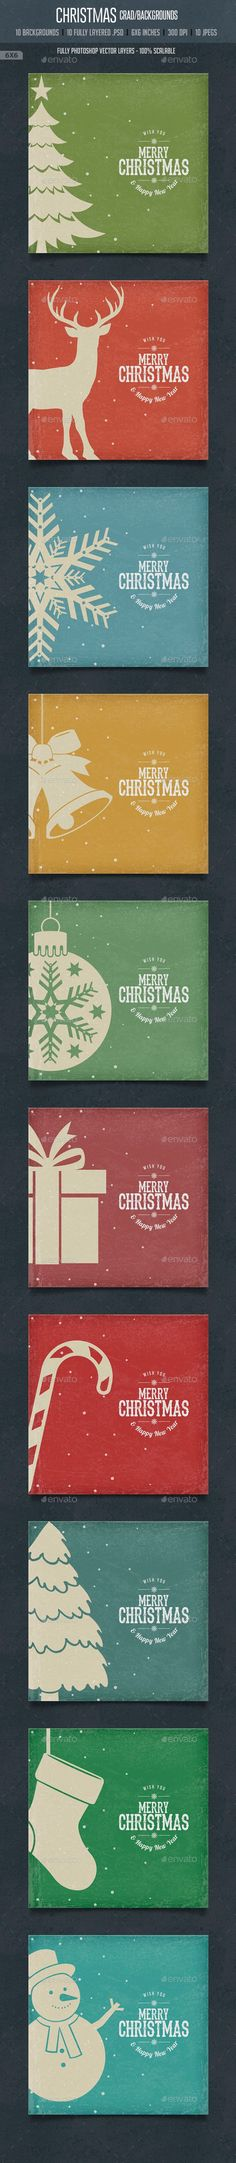 Vintage Christmas Square Cards / Backgrounds PSD #design Download: http://graphicriver.net/item/vintage-christmas-square-cards-backgrounds/9602298?ref=ksioks